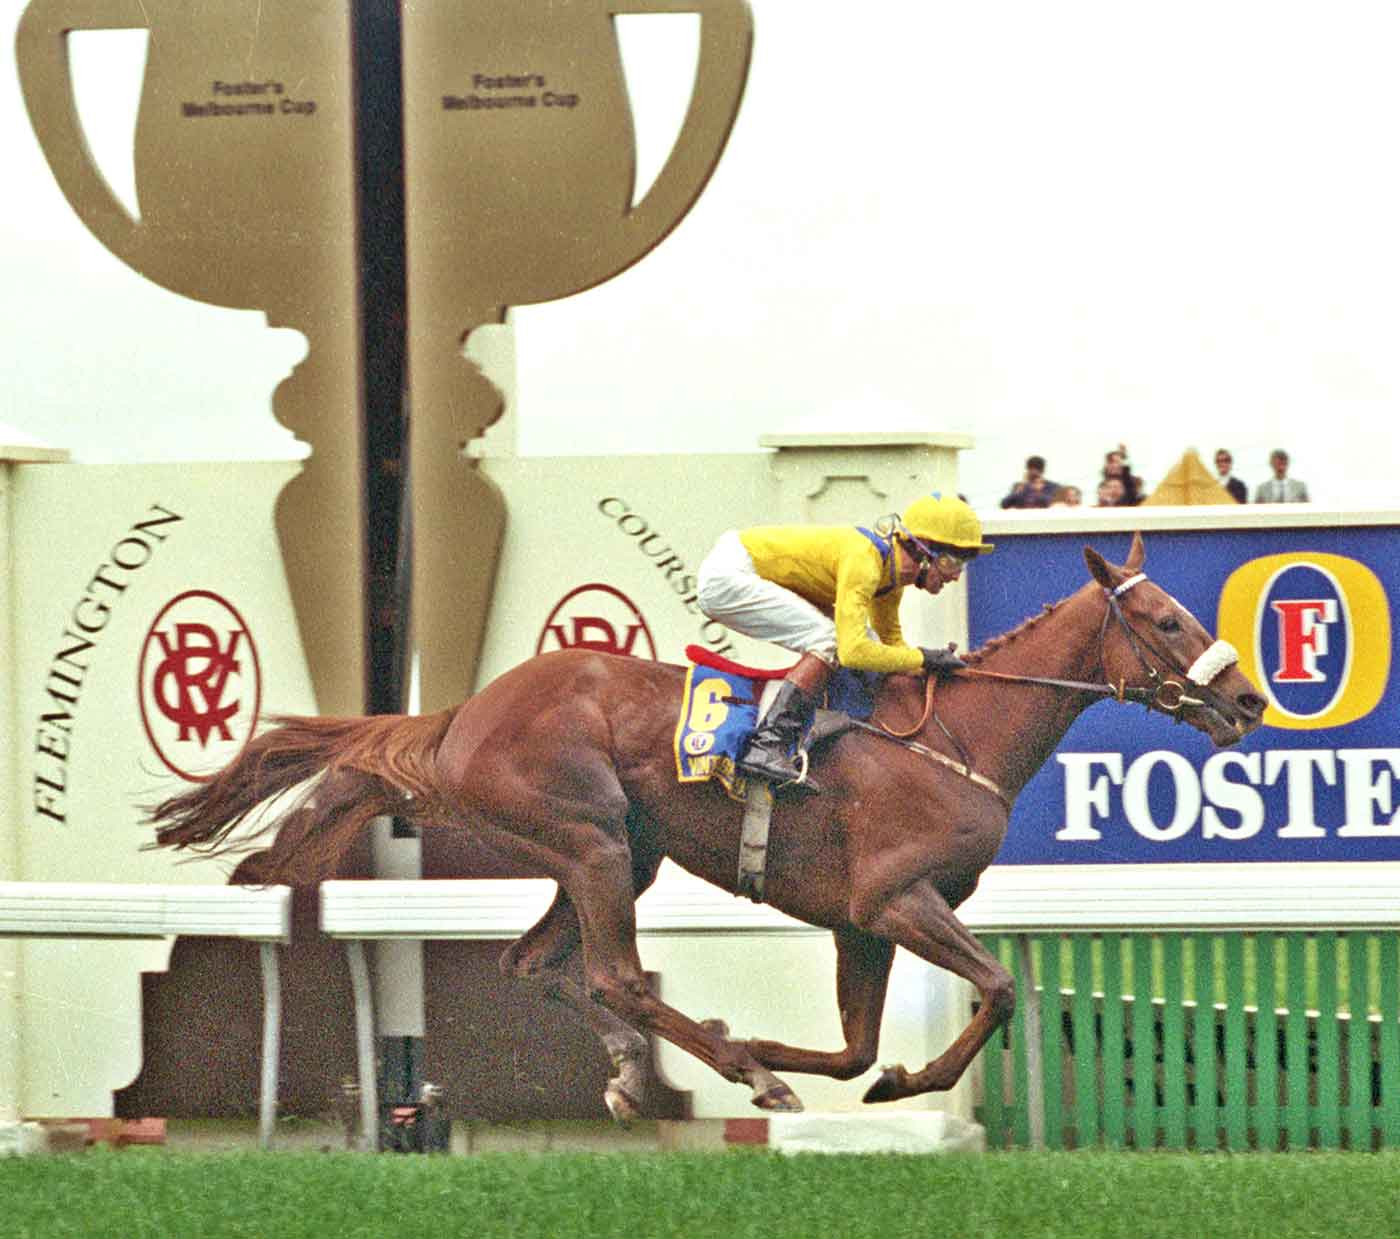 Jockey and race horse on a race course with spectators in background.